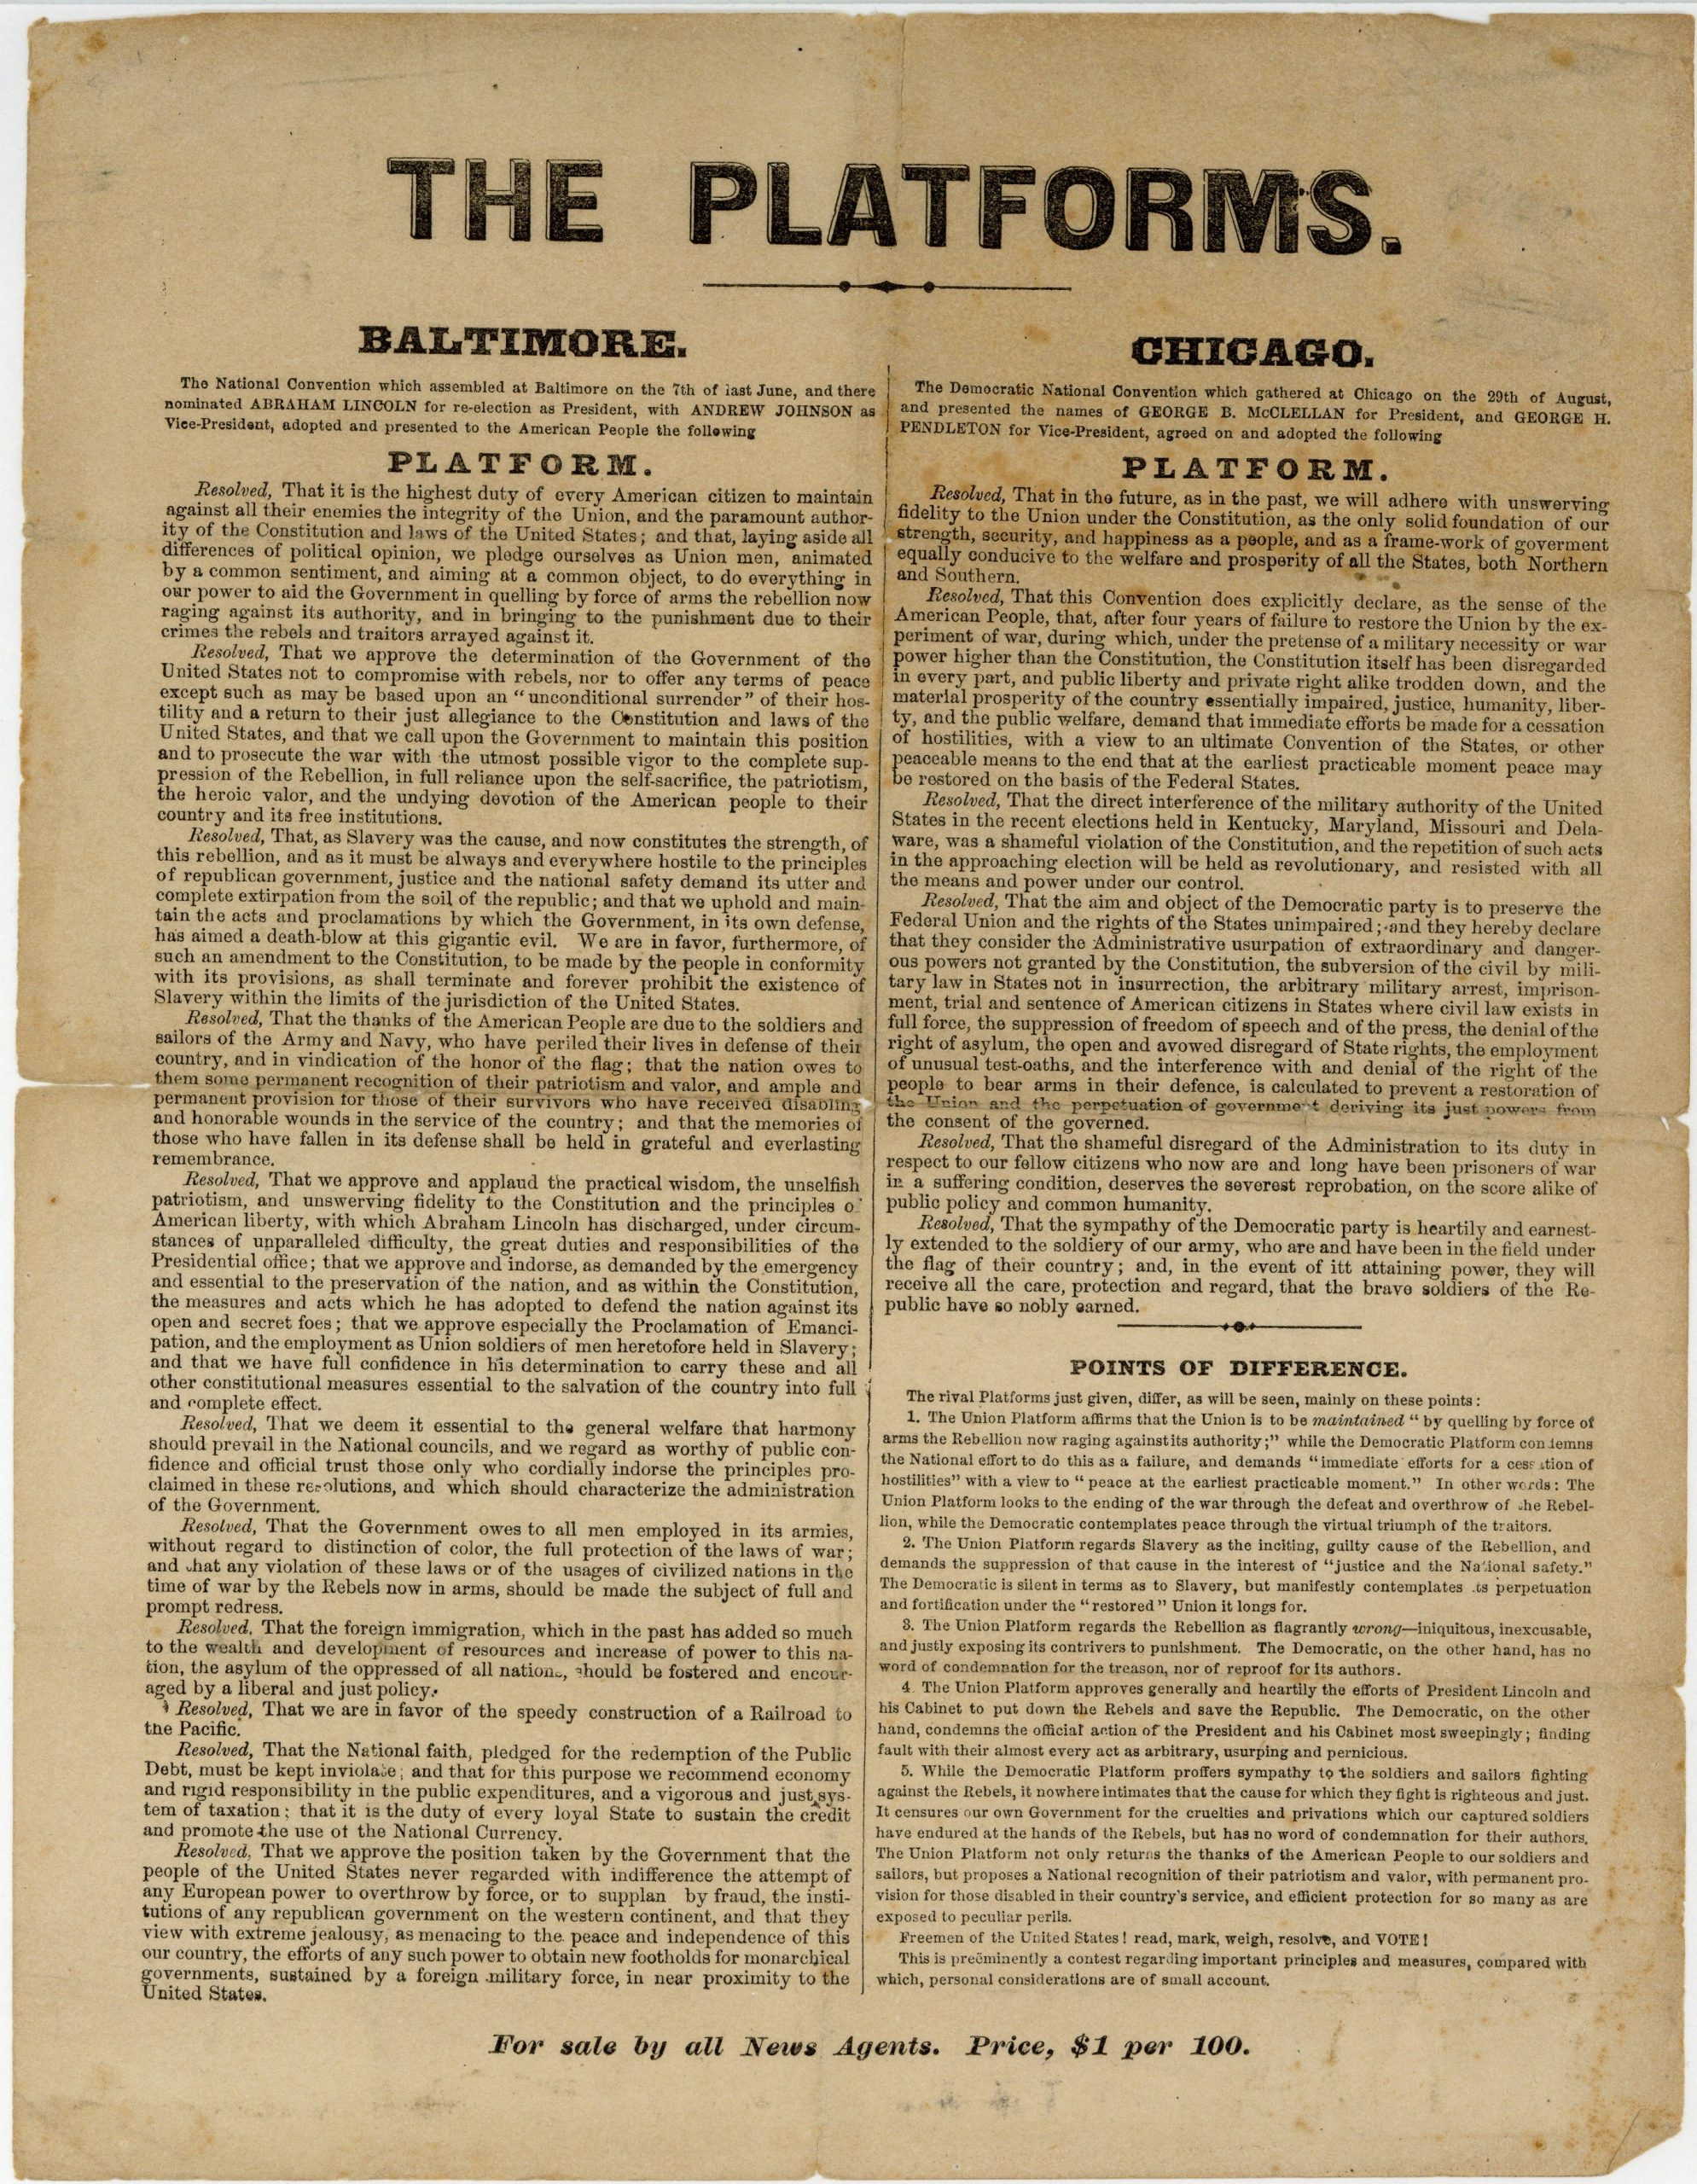 Broadside printed with campaign platforms for the Union party and Democratic party